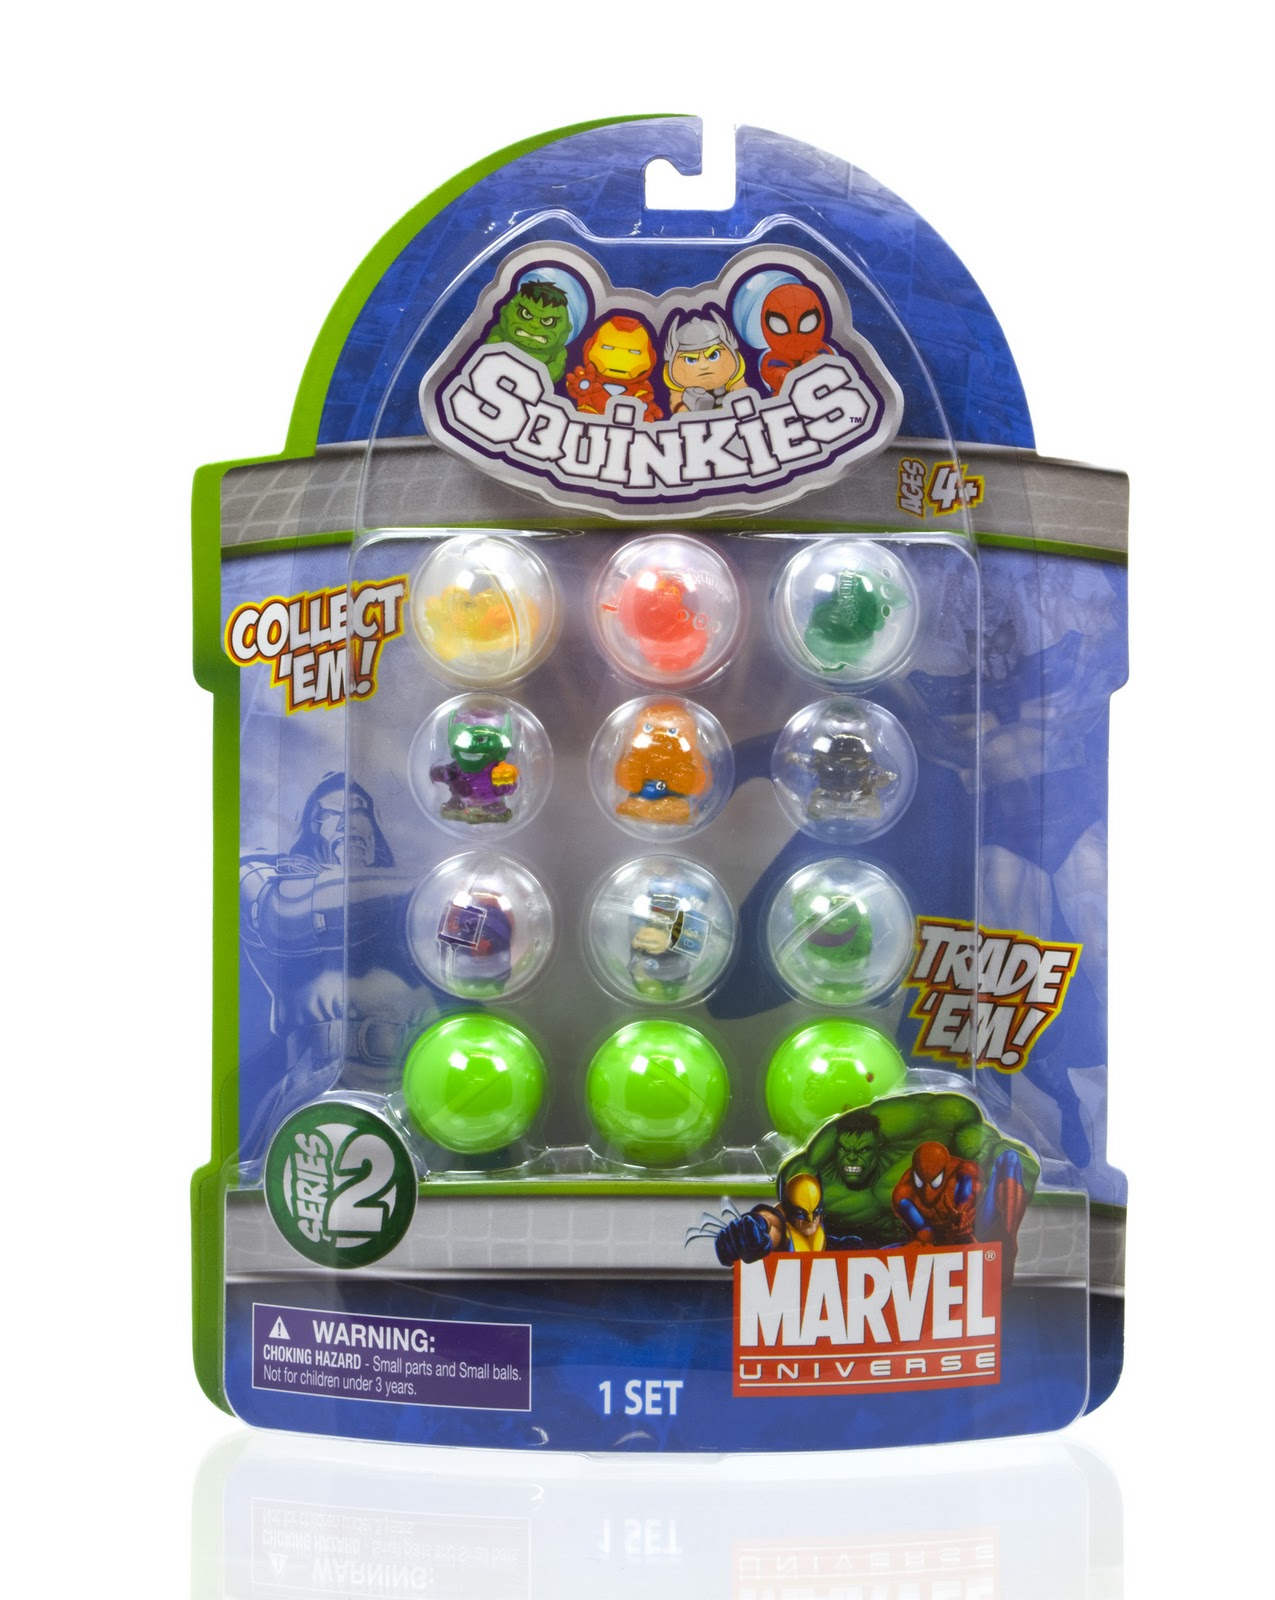 Squinkies Toys For Boys : Chasing tiny feet holiday gift guide new squinkies